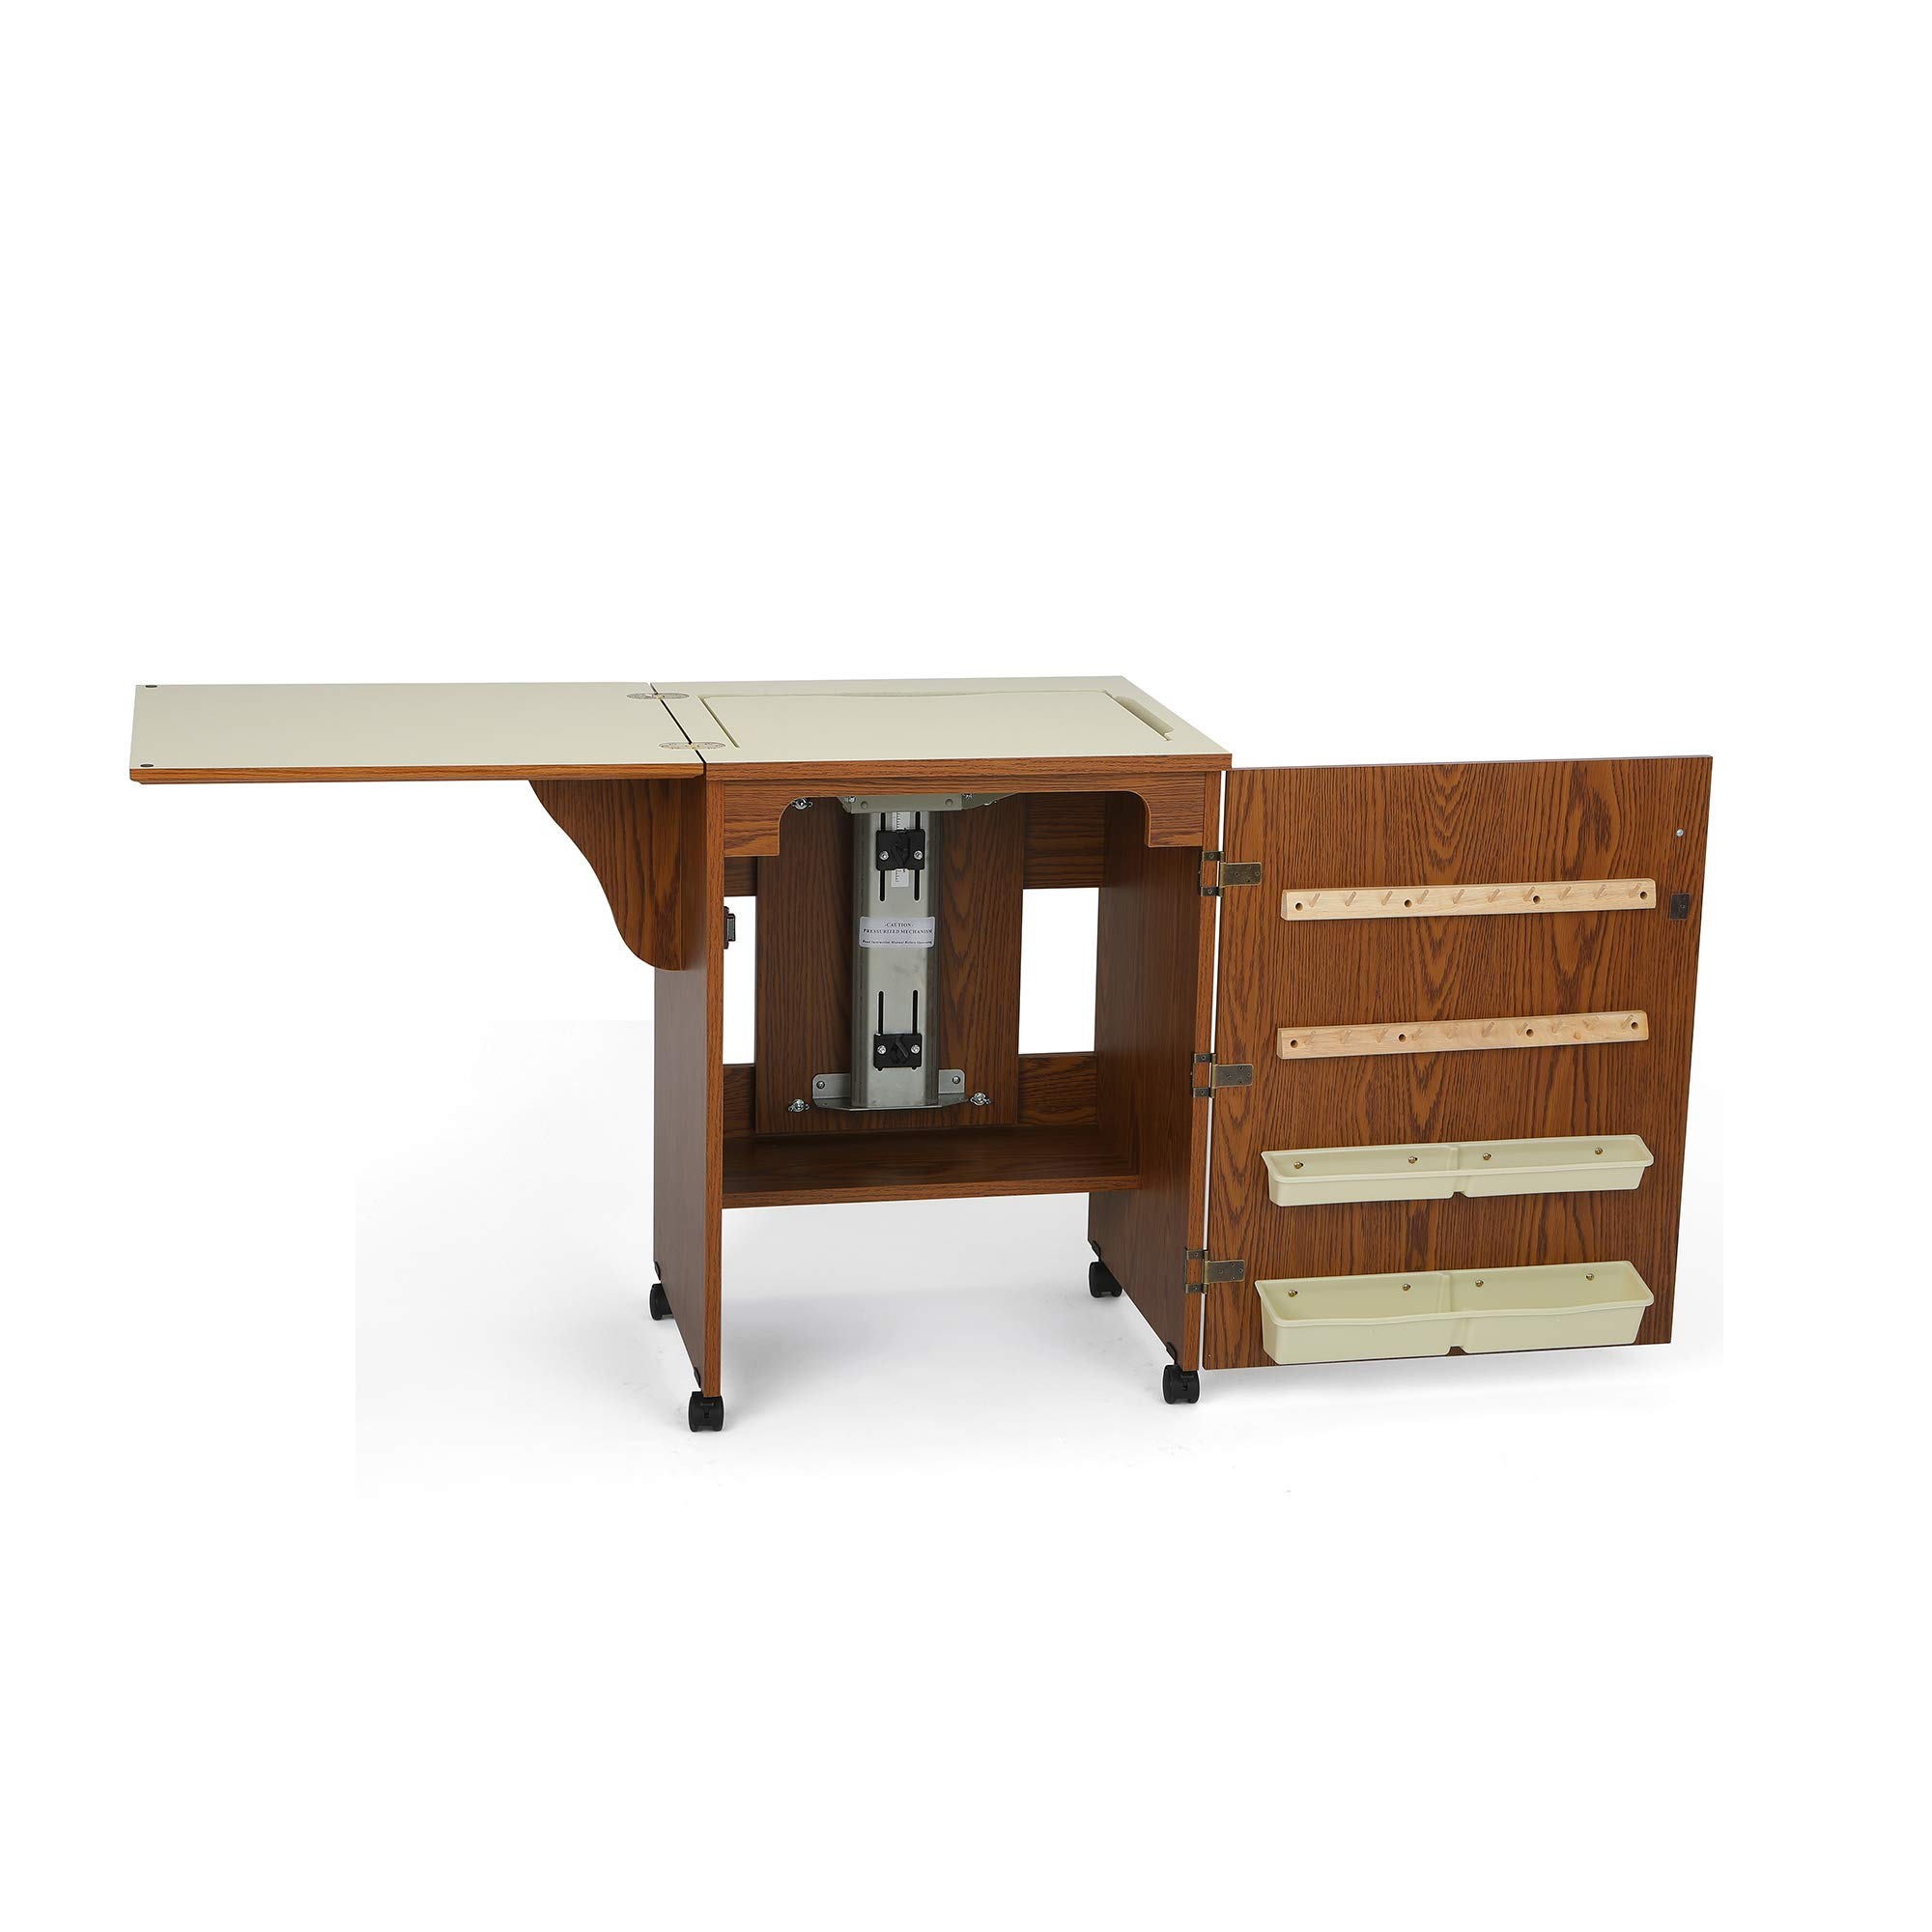 Arrow 500 Sewnatra Sewing Cabinet for Sewing, Cutting, Quilting, Crafting, with Storage and Airlift, Portable with Wheels, Oak Finish by Arrow Sewing Cabinets